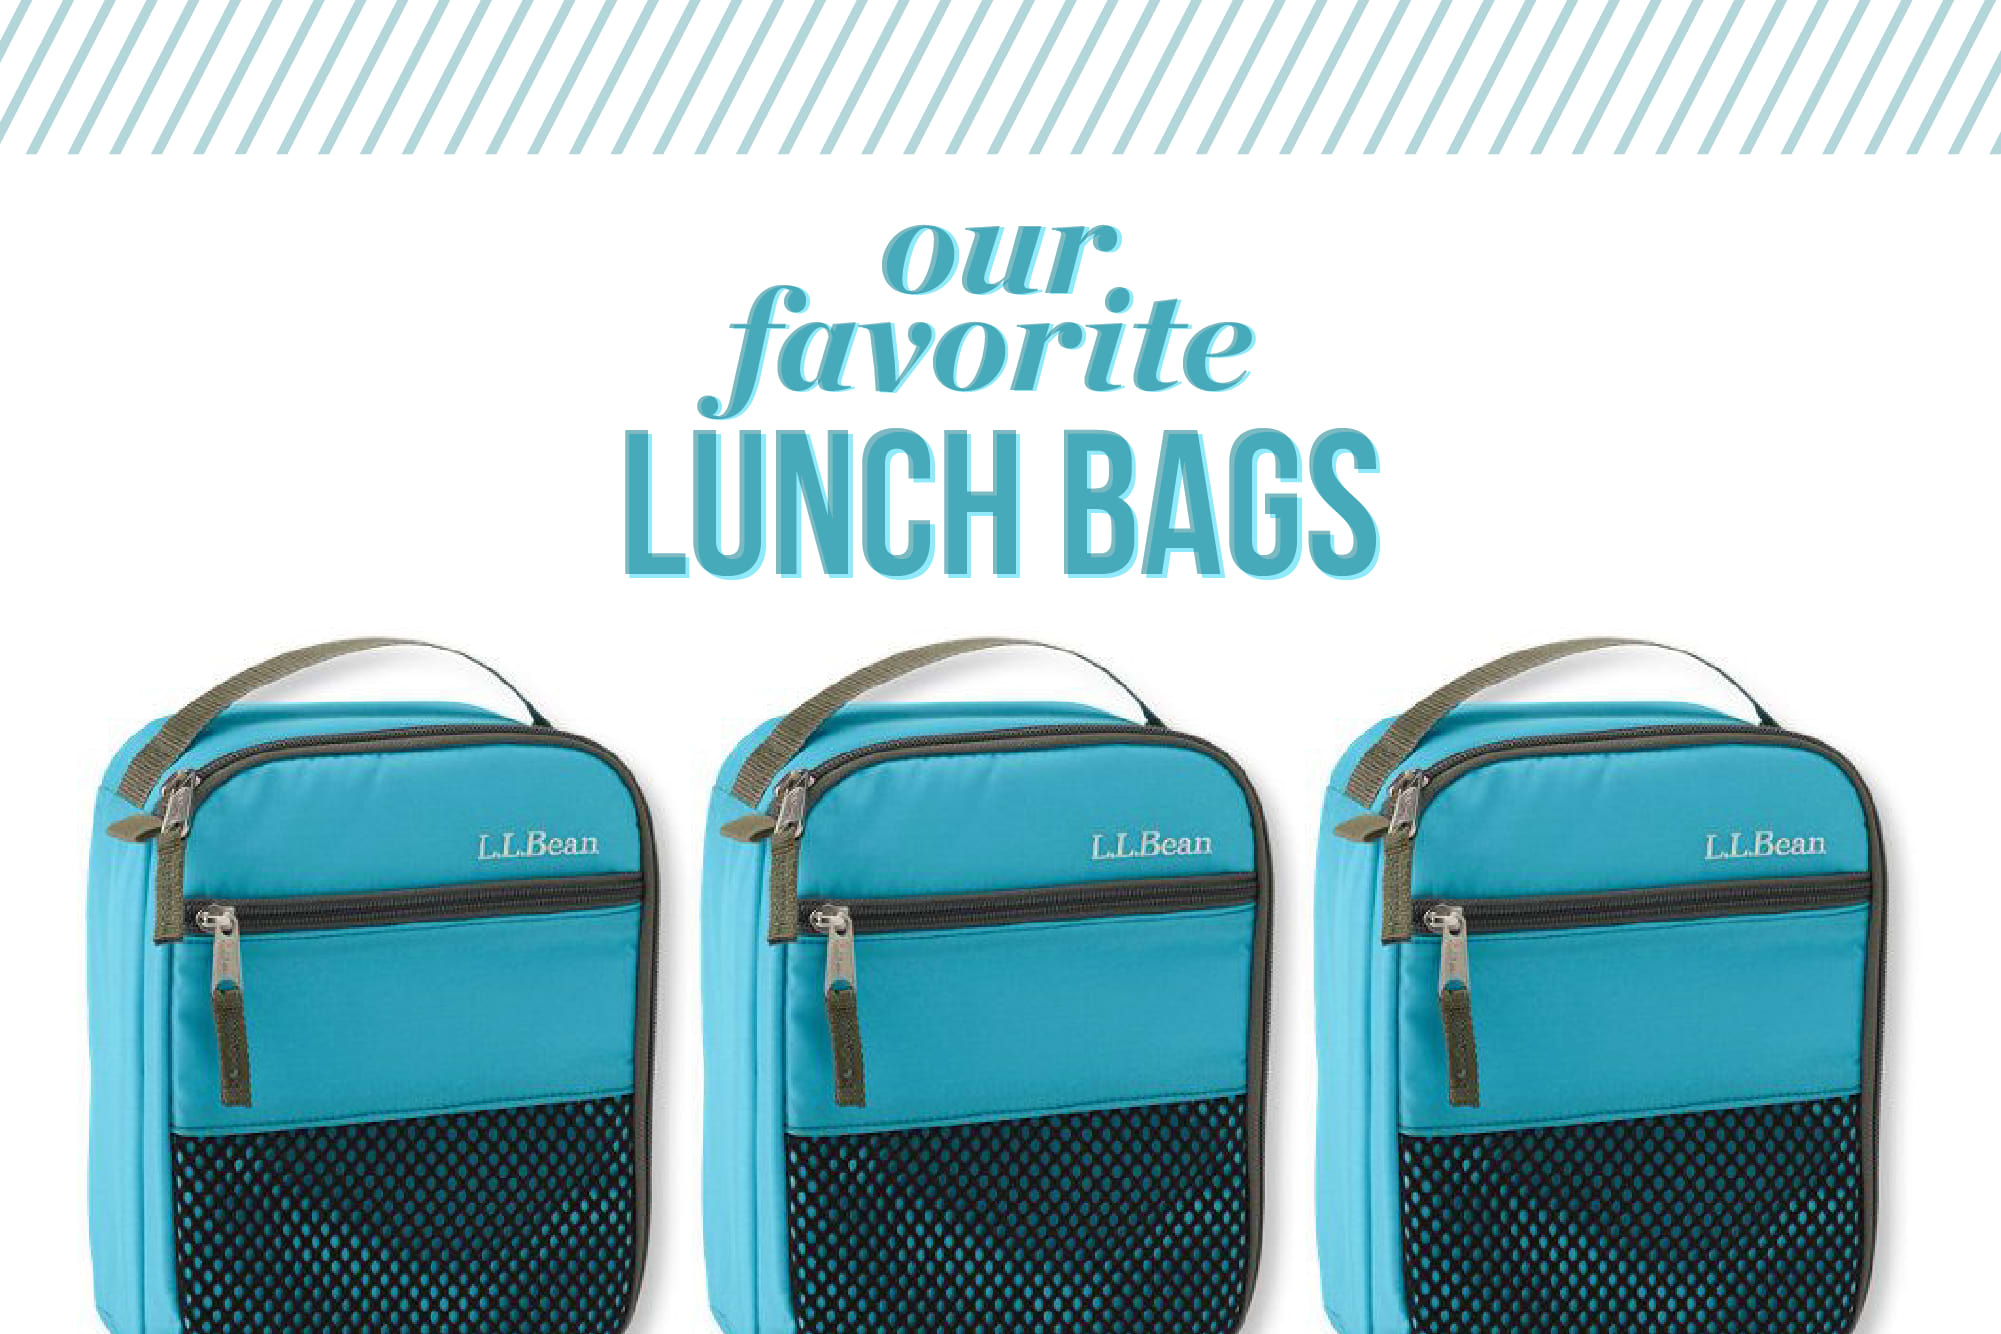 Miraculous 5 Lunch Boxes That Will Keep Your Food The Coldest Kitchn Gmtry Best Dining Table And Chair Ideas Images Gmtryco